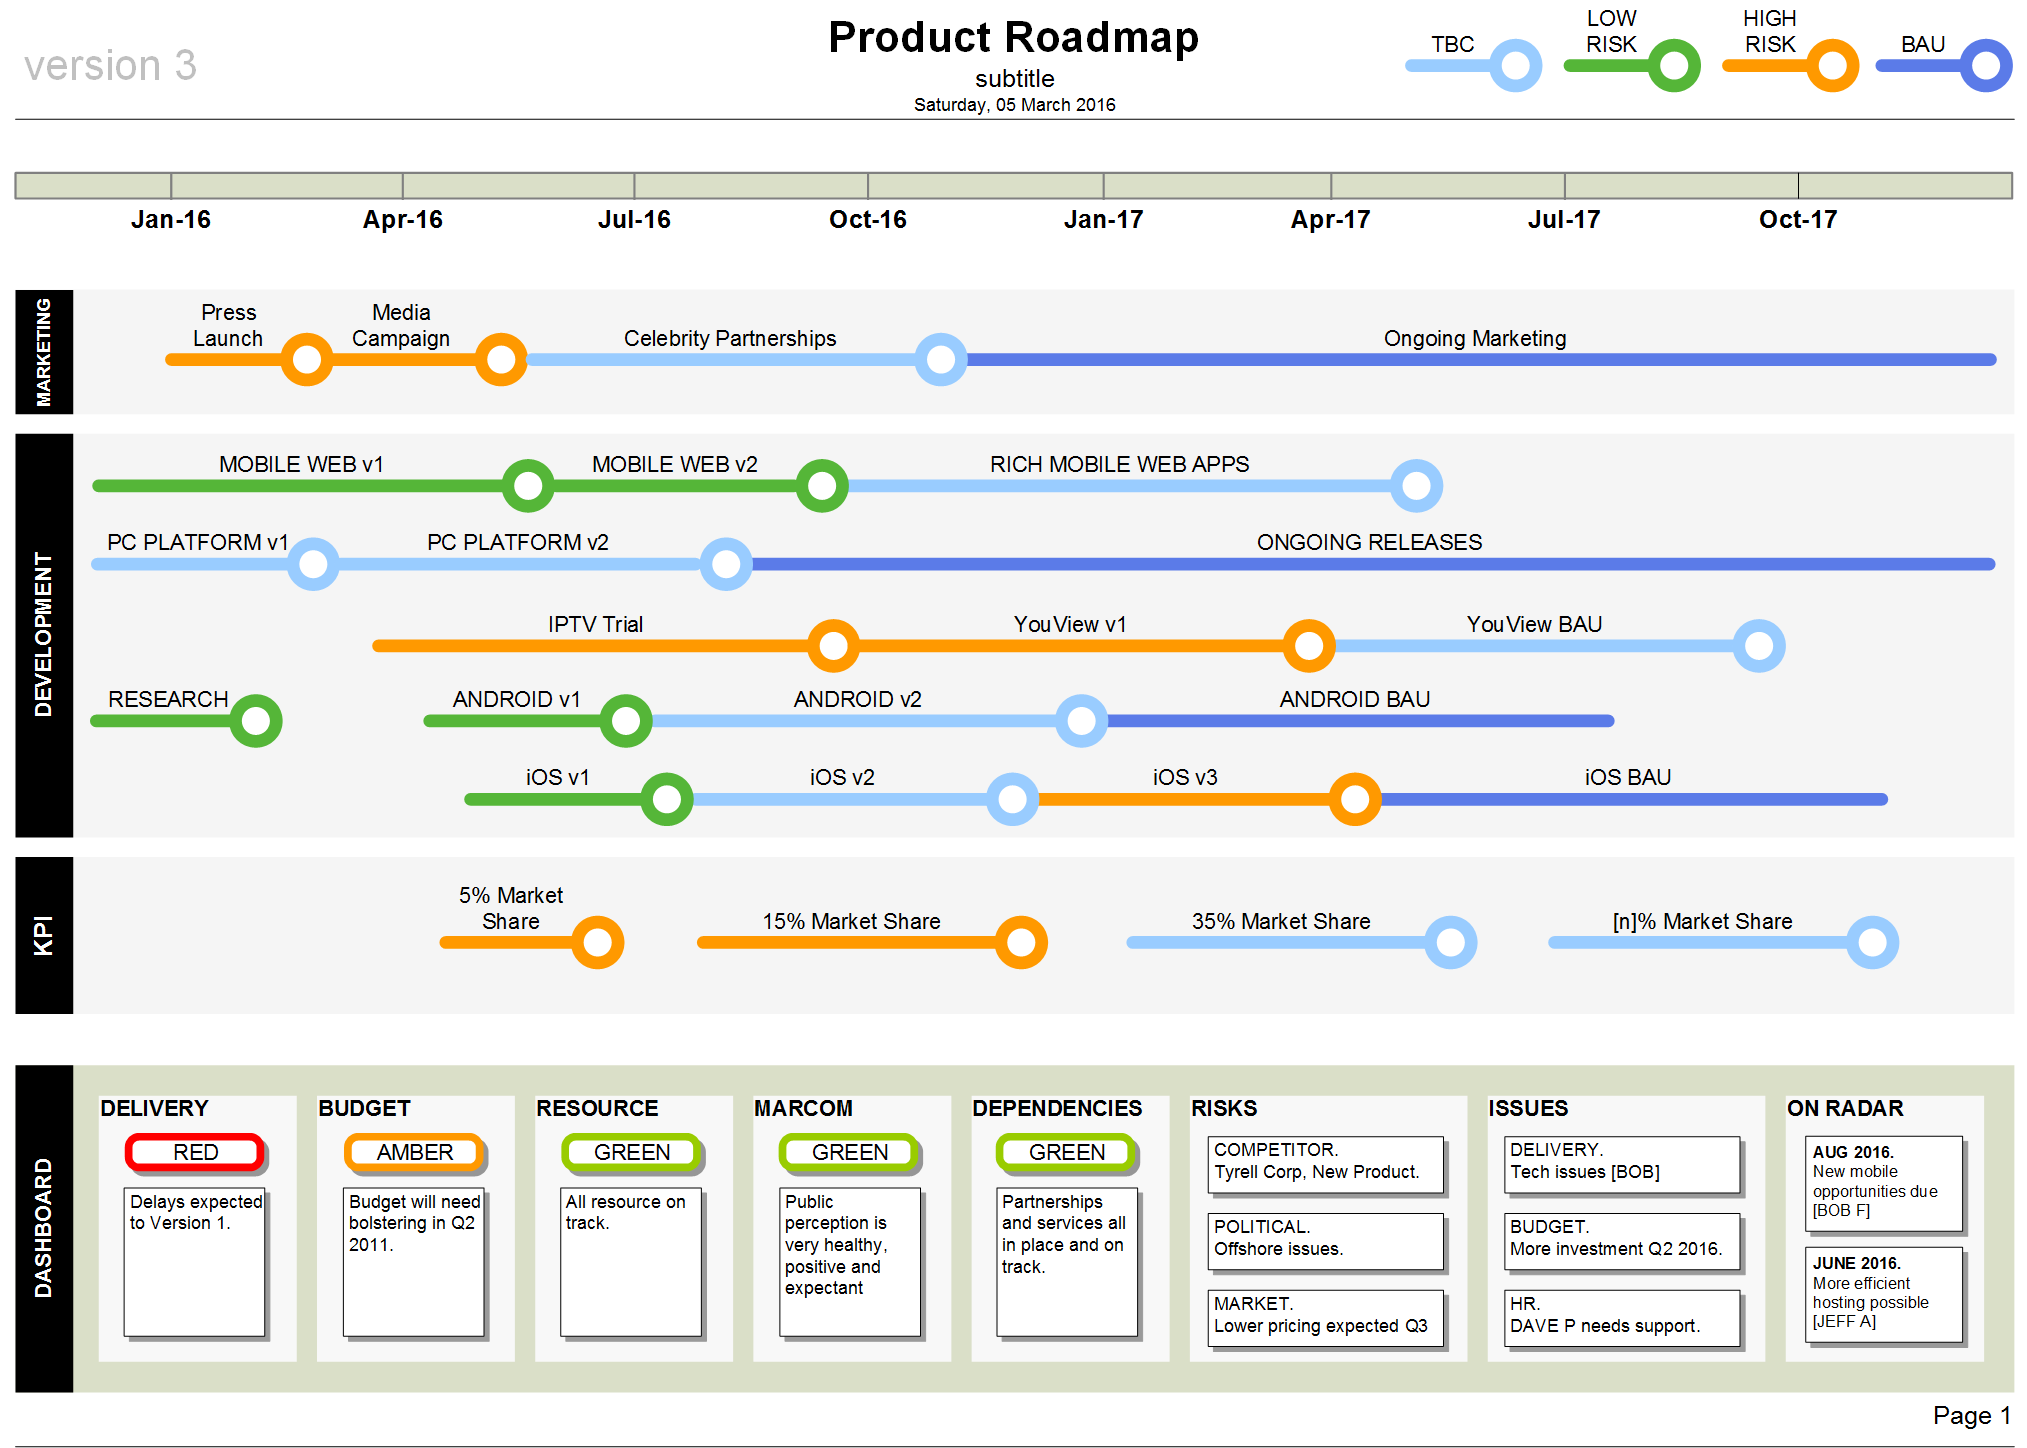 Product Roadmap Template Visio Pinterest Template And Project - Project deliverables template